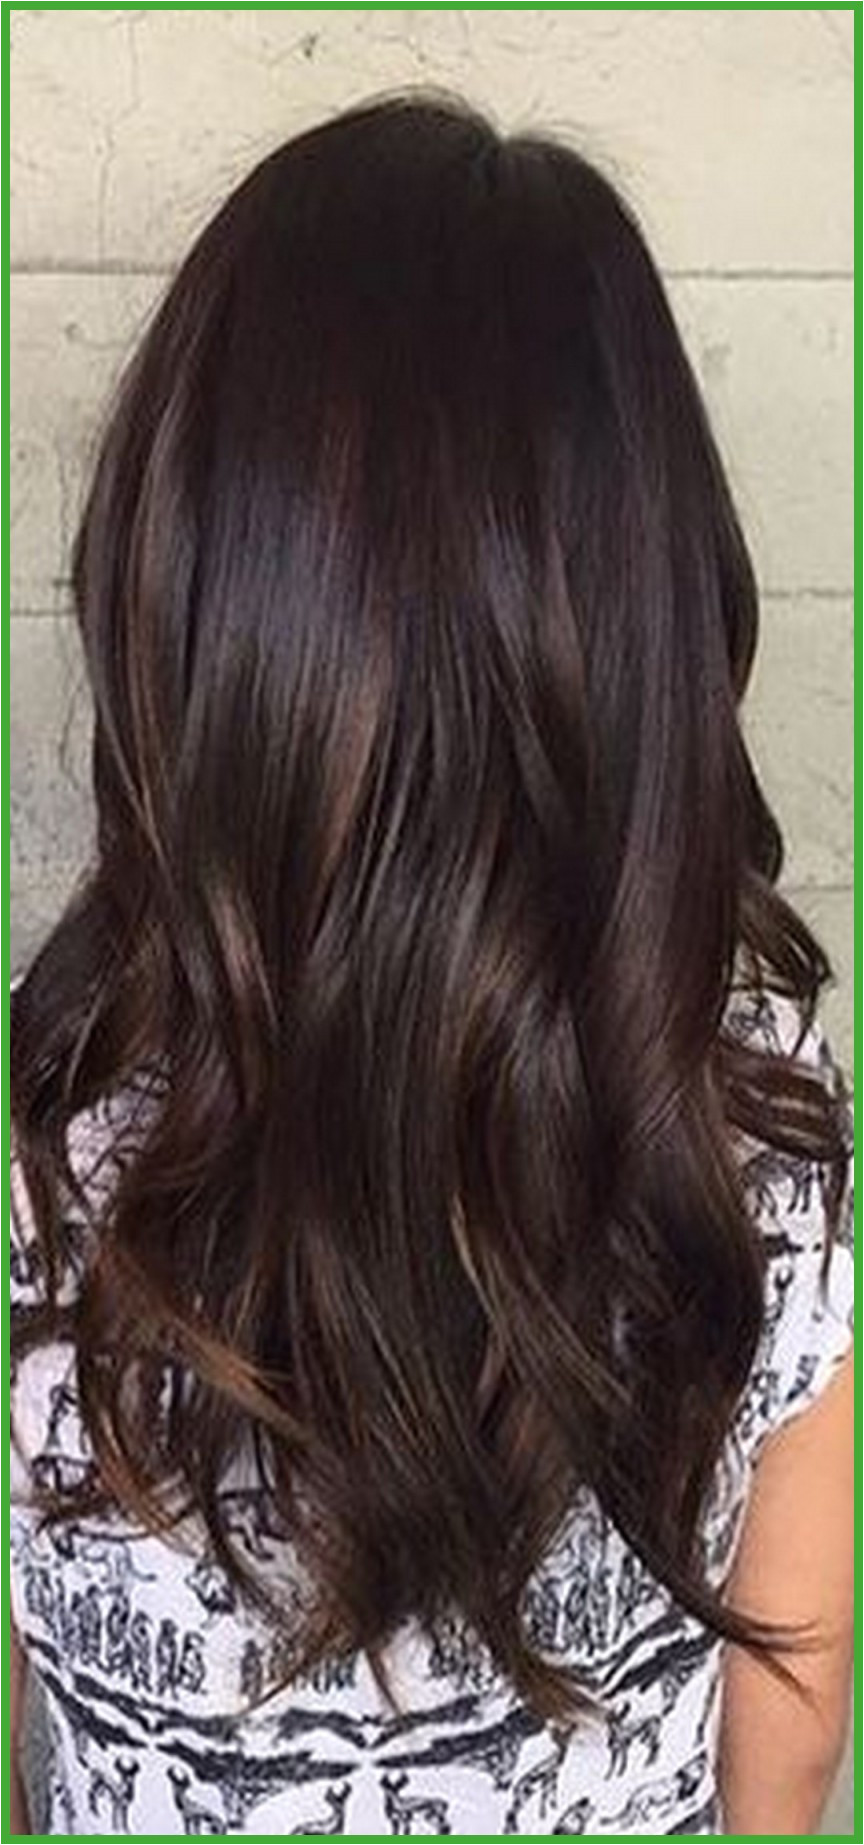 Asian Hair with Highlights Awesome Long Hair Hairstyles Hair Dye Styles Beautiful I Pinimg 1200x 0d